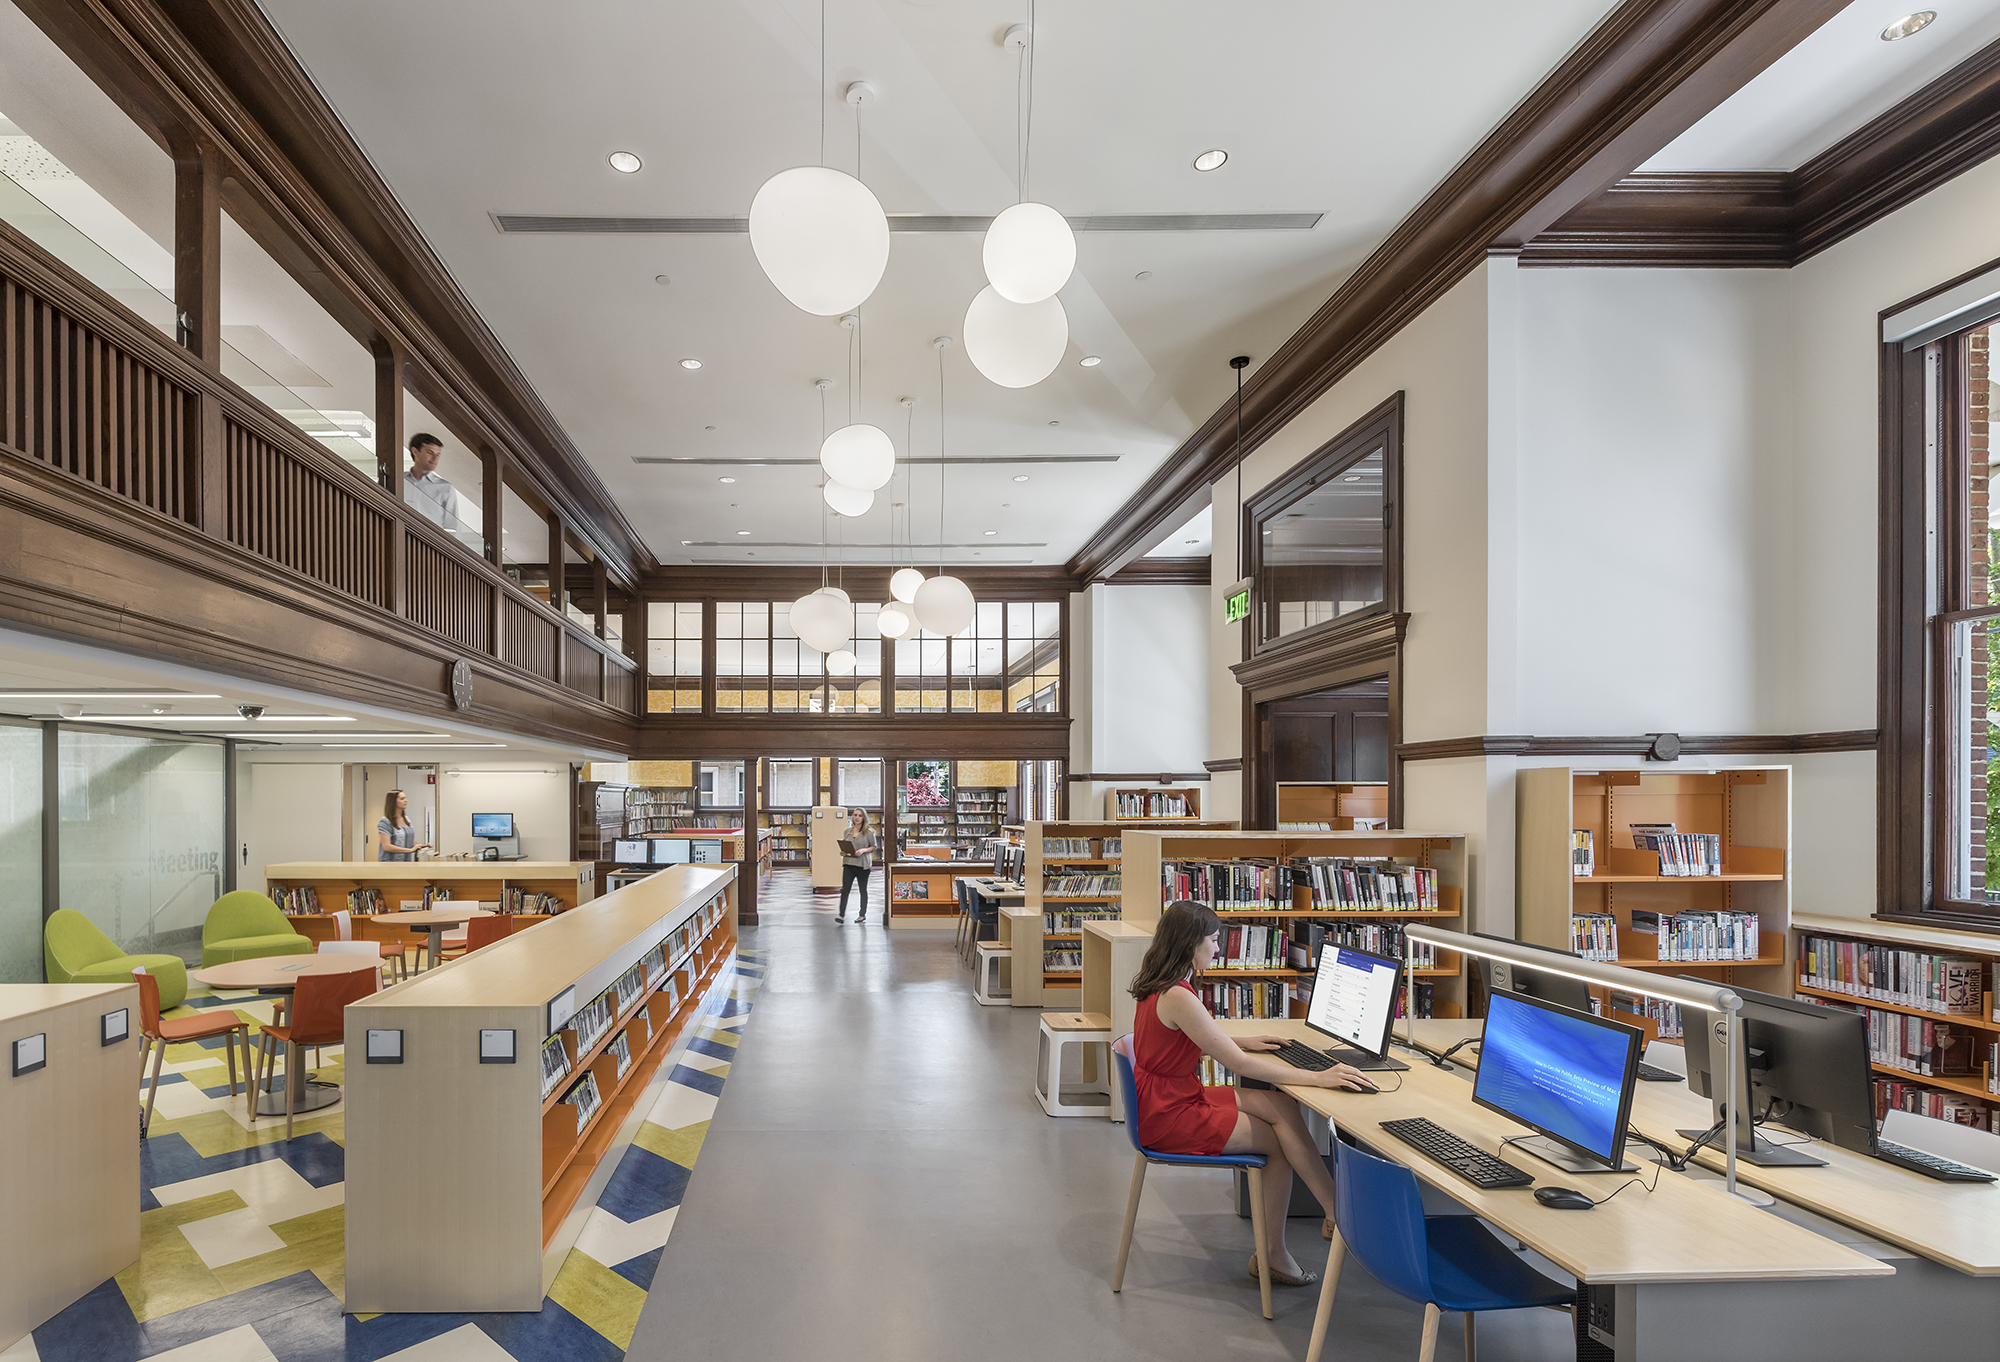 New photos of the Jamaica Plain Branch of the Boston Public Library